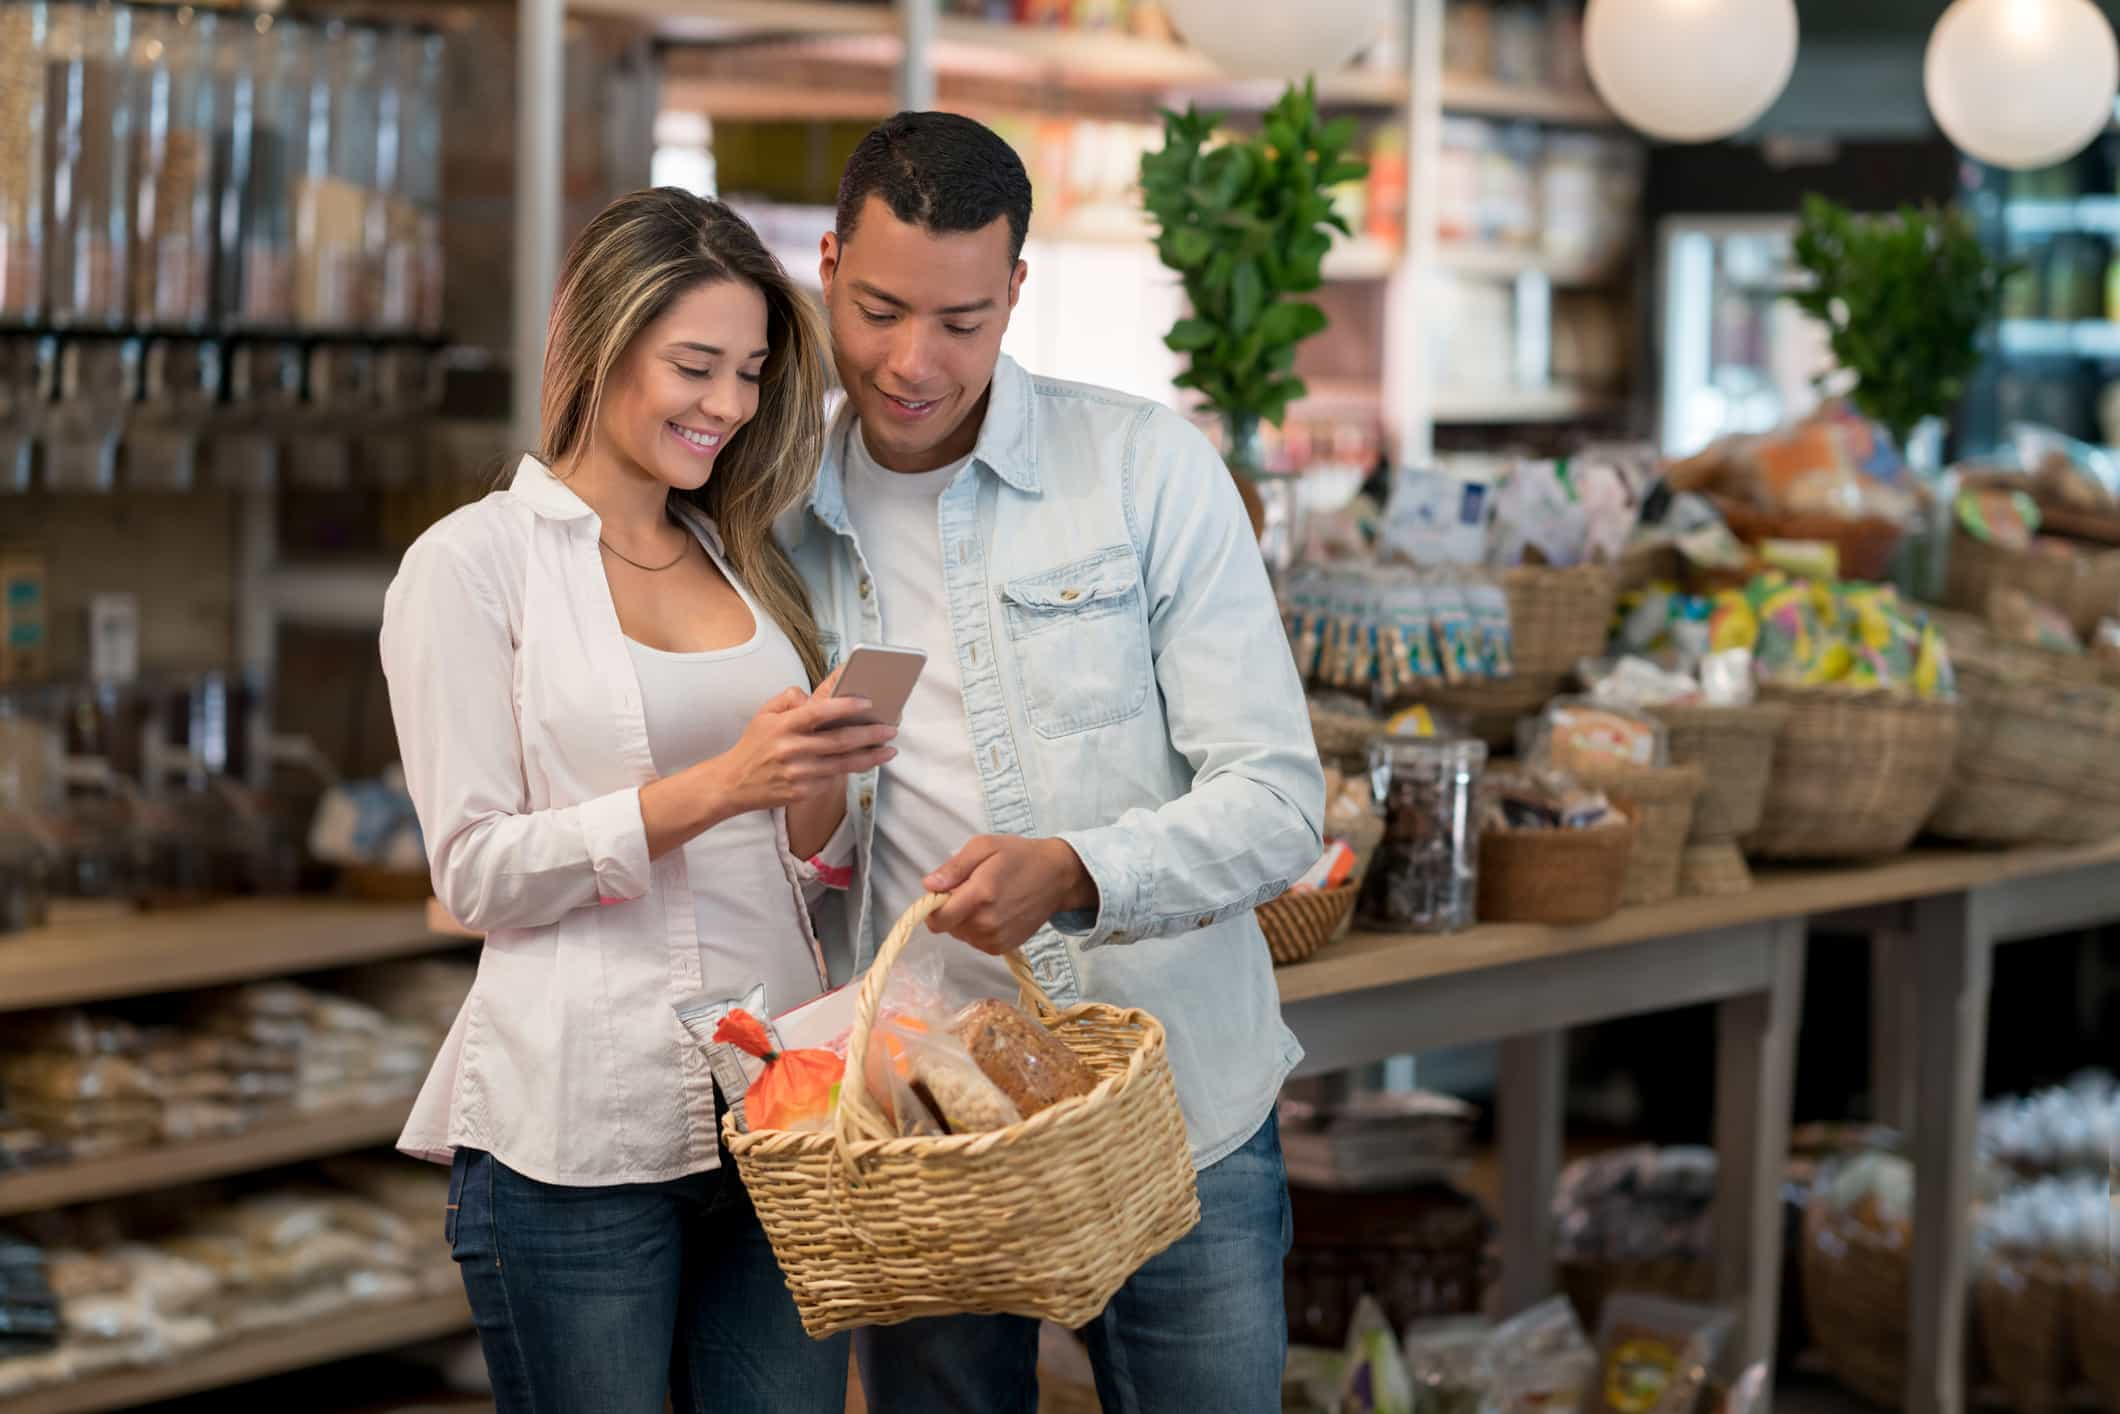 Latin American couple shopping at the grocery store